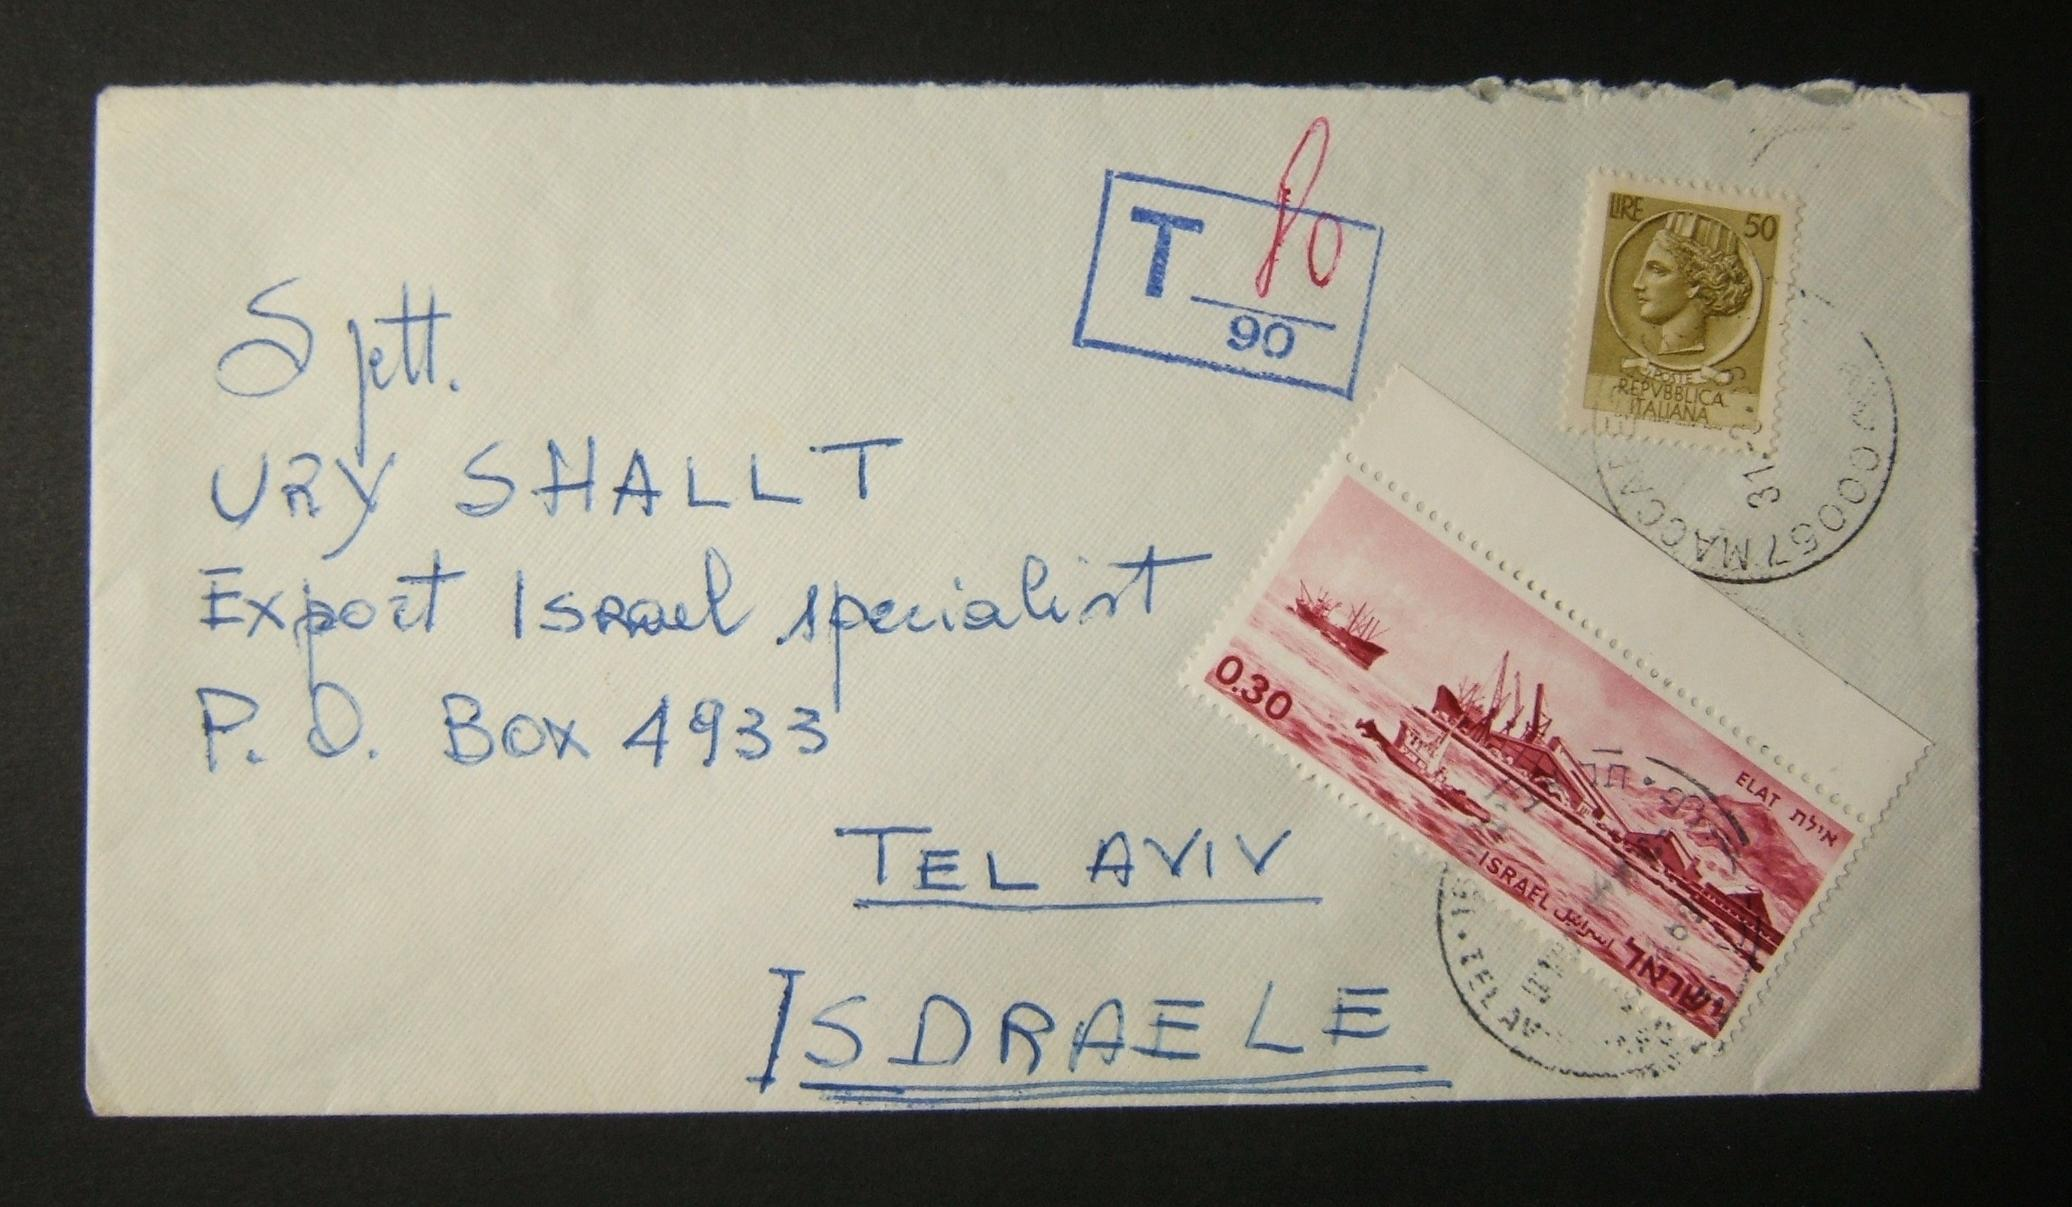 1969 incoming Italian postage due mail: 31-3-69 surface mailed(?) commercial cover ex ROME to TLV underfranked at 50c and marked for 80c tax in Italy, paid in TLV as 30 Ag using 19